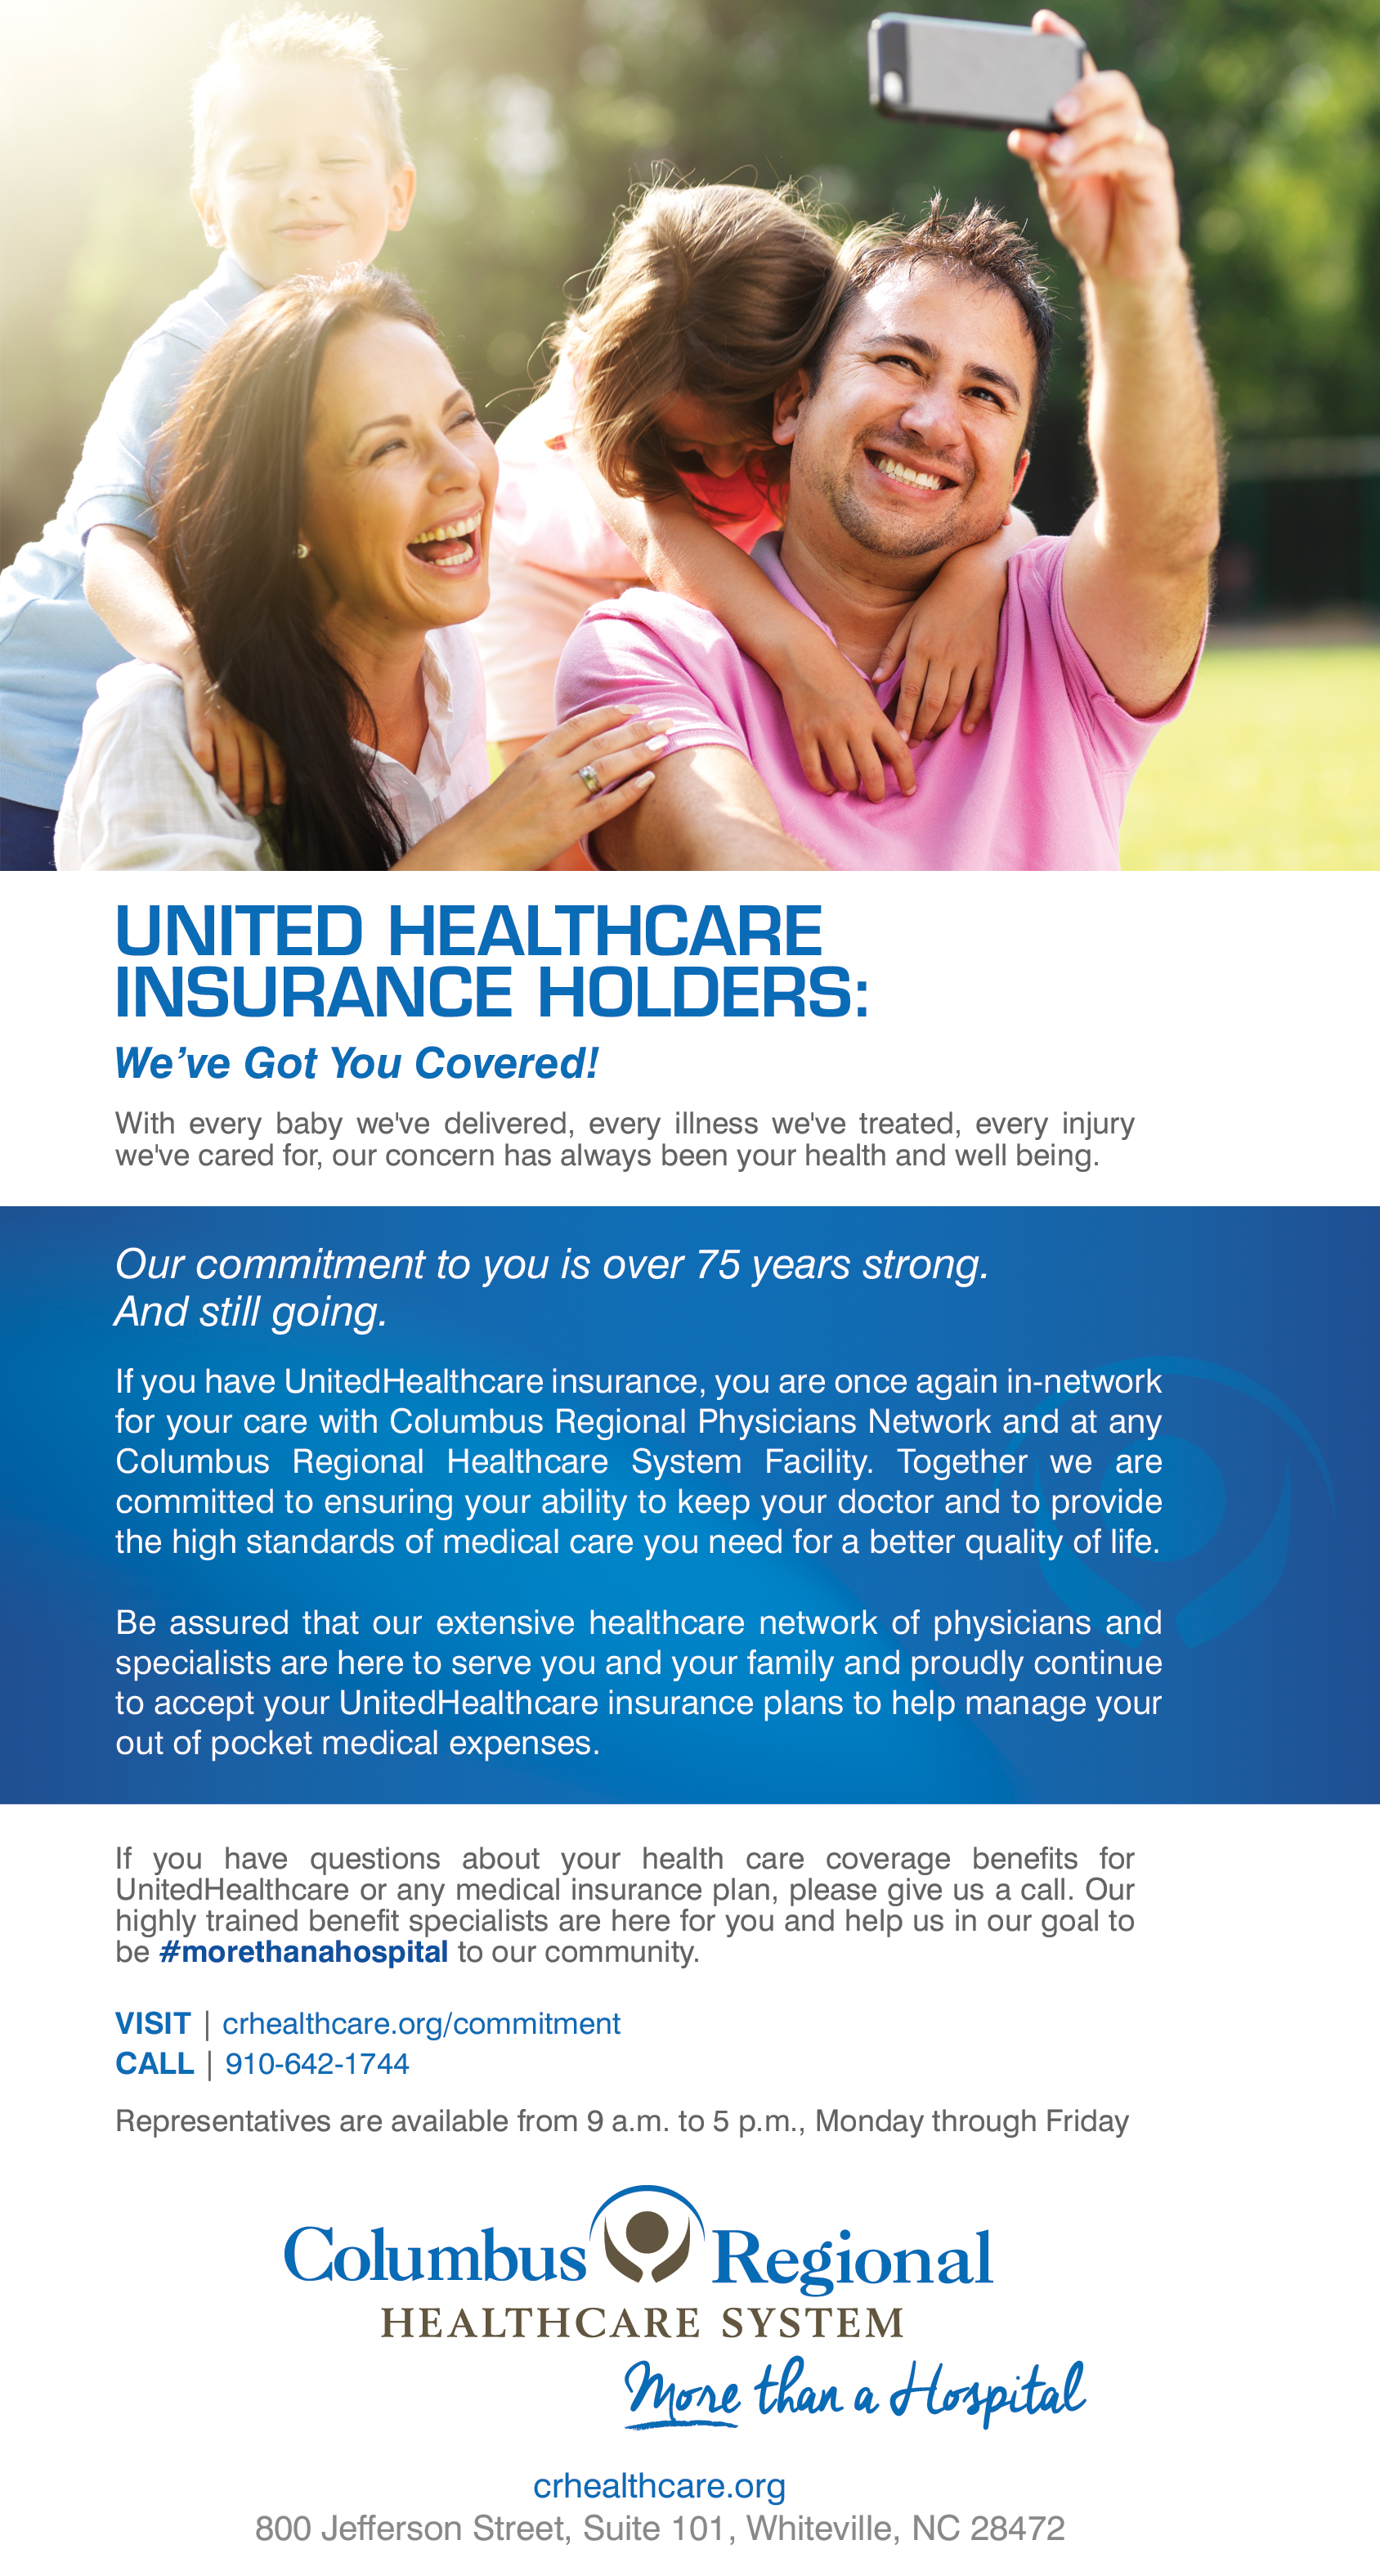 CRHS and UnitedHealthcare Renew Network Relationship